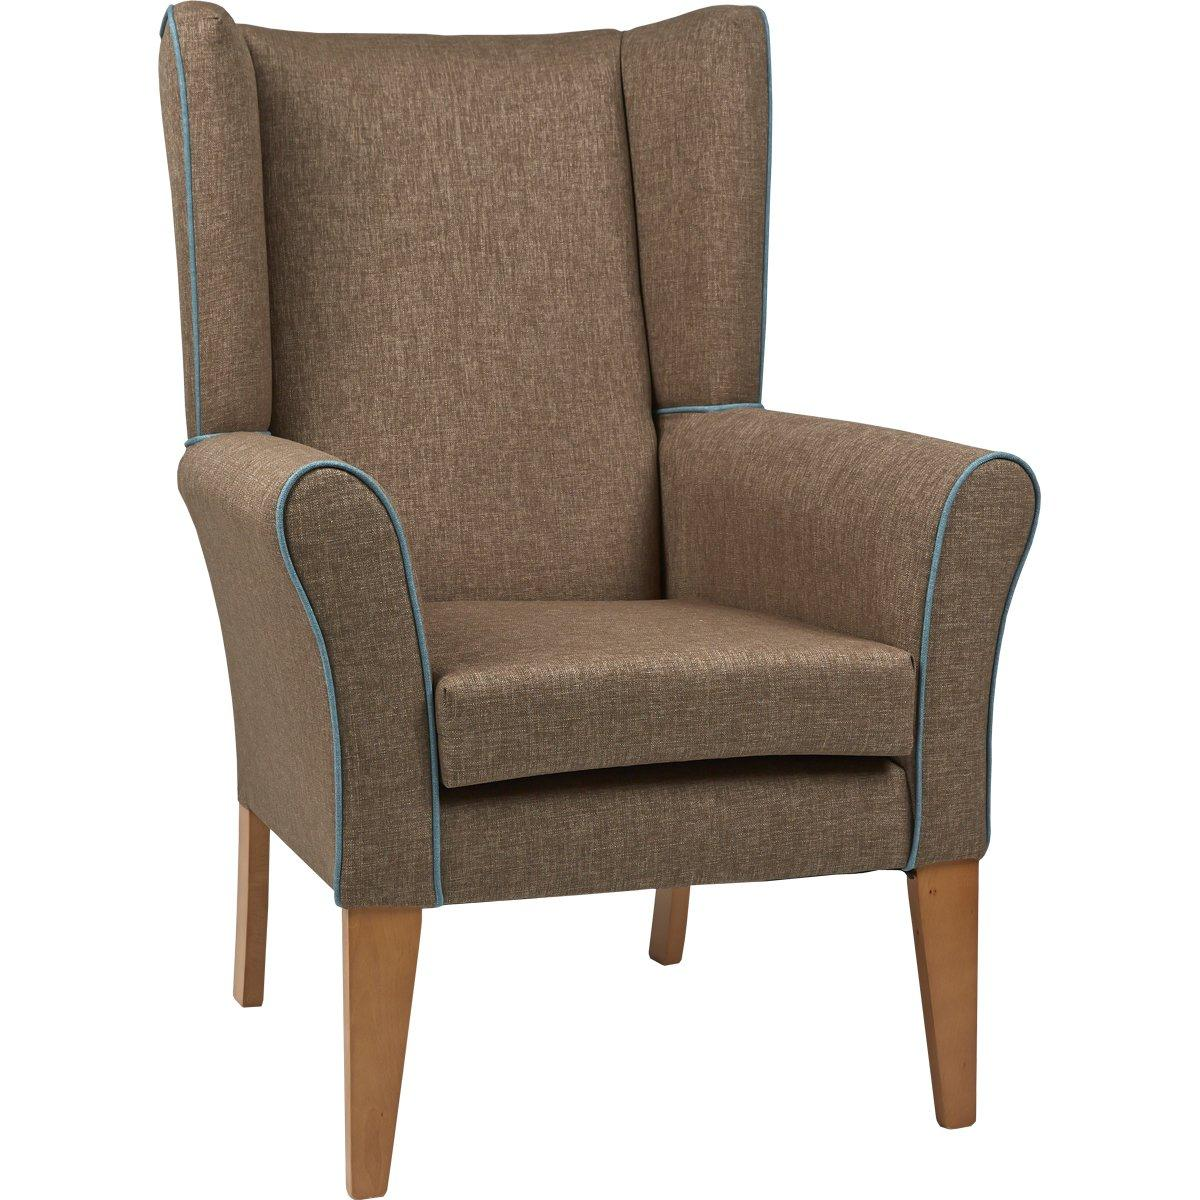 Cambourne high back chair with wings furncare for Armchair with high back